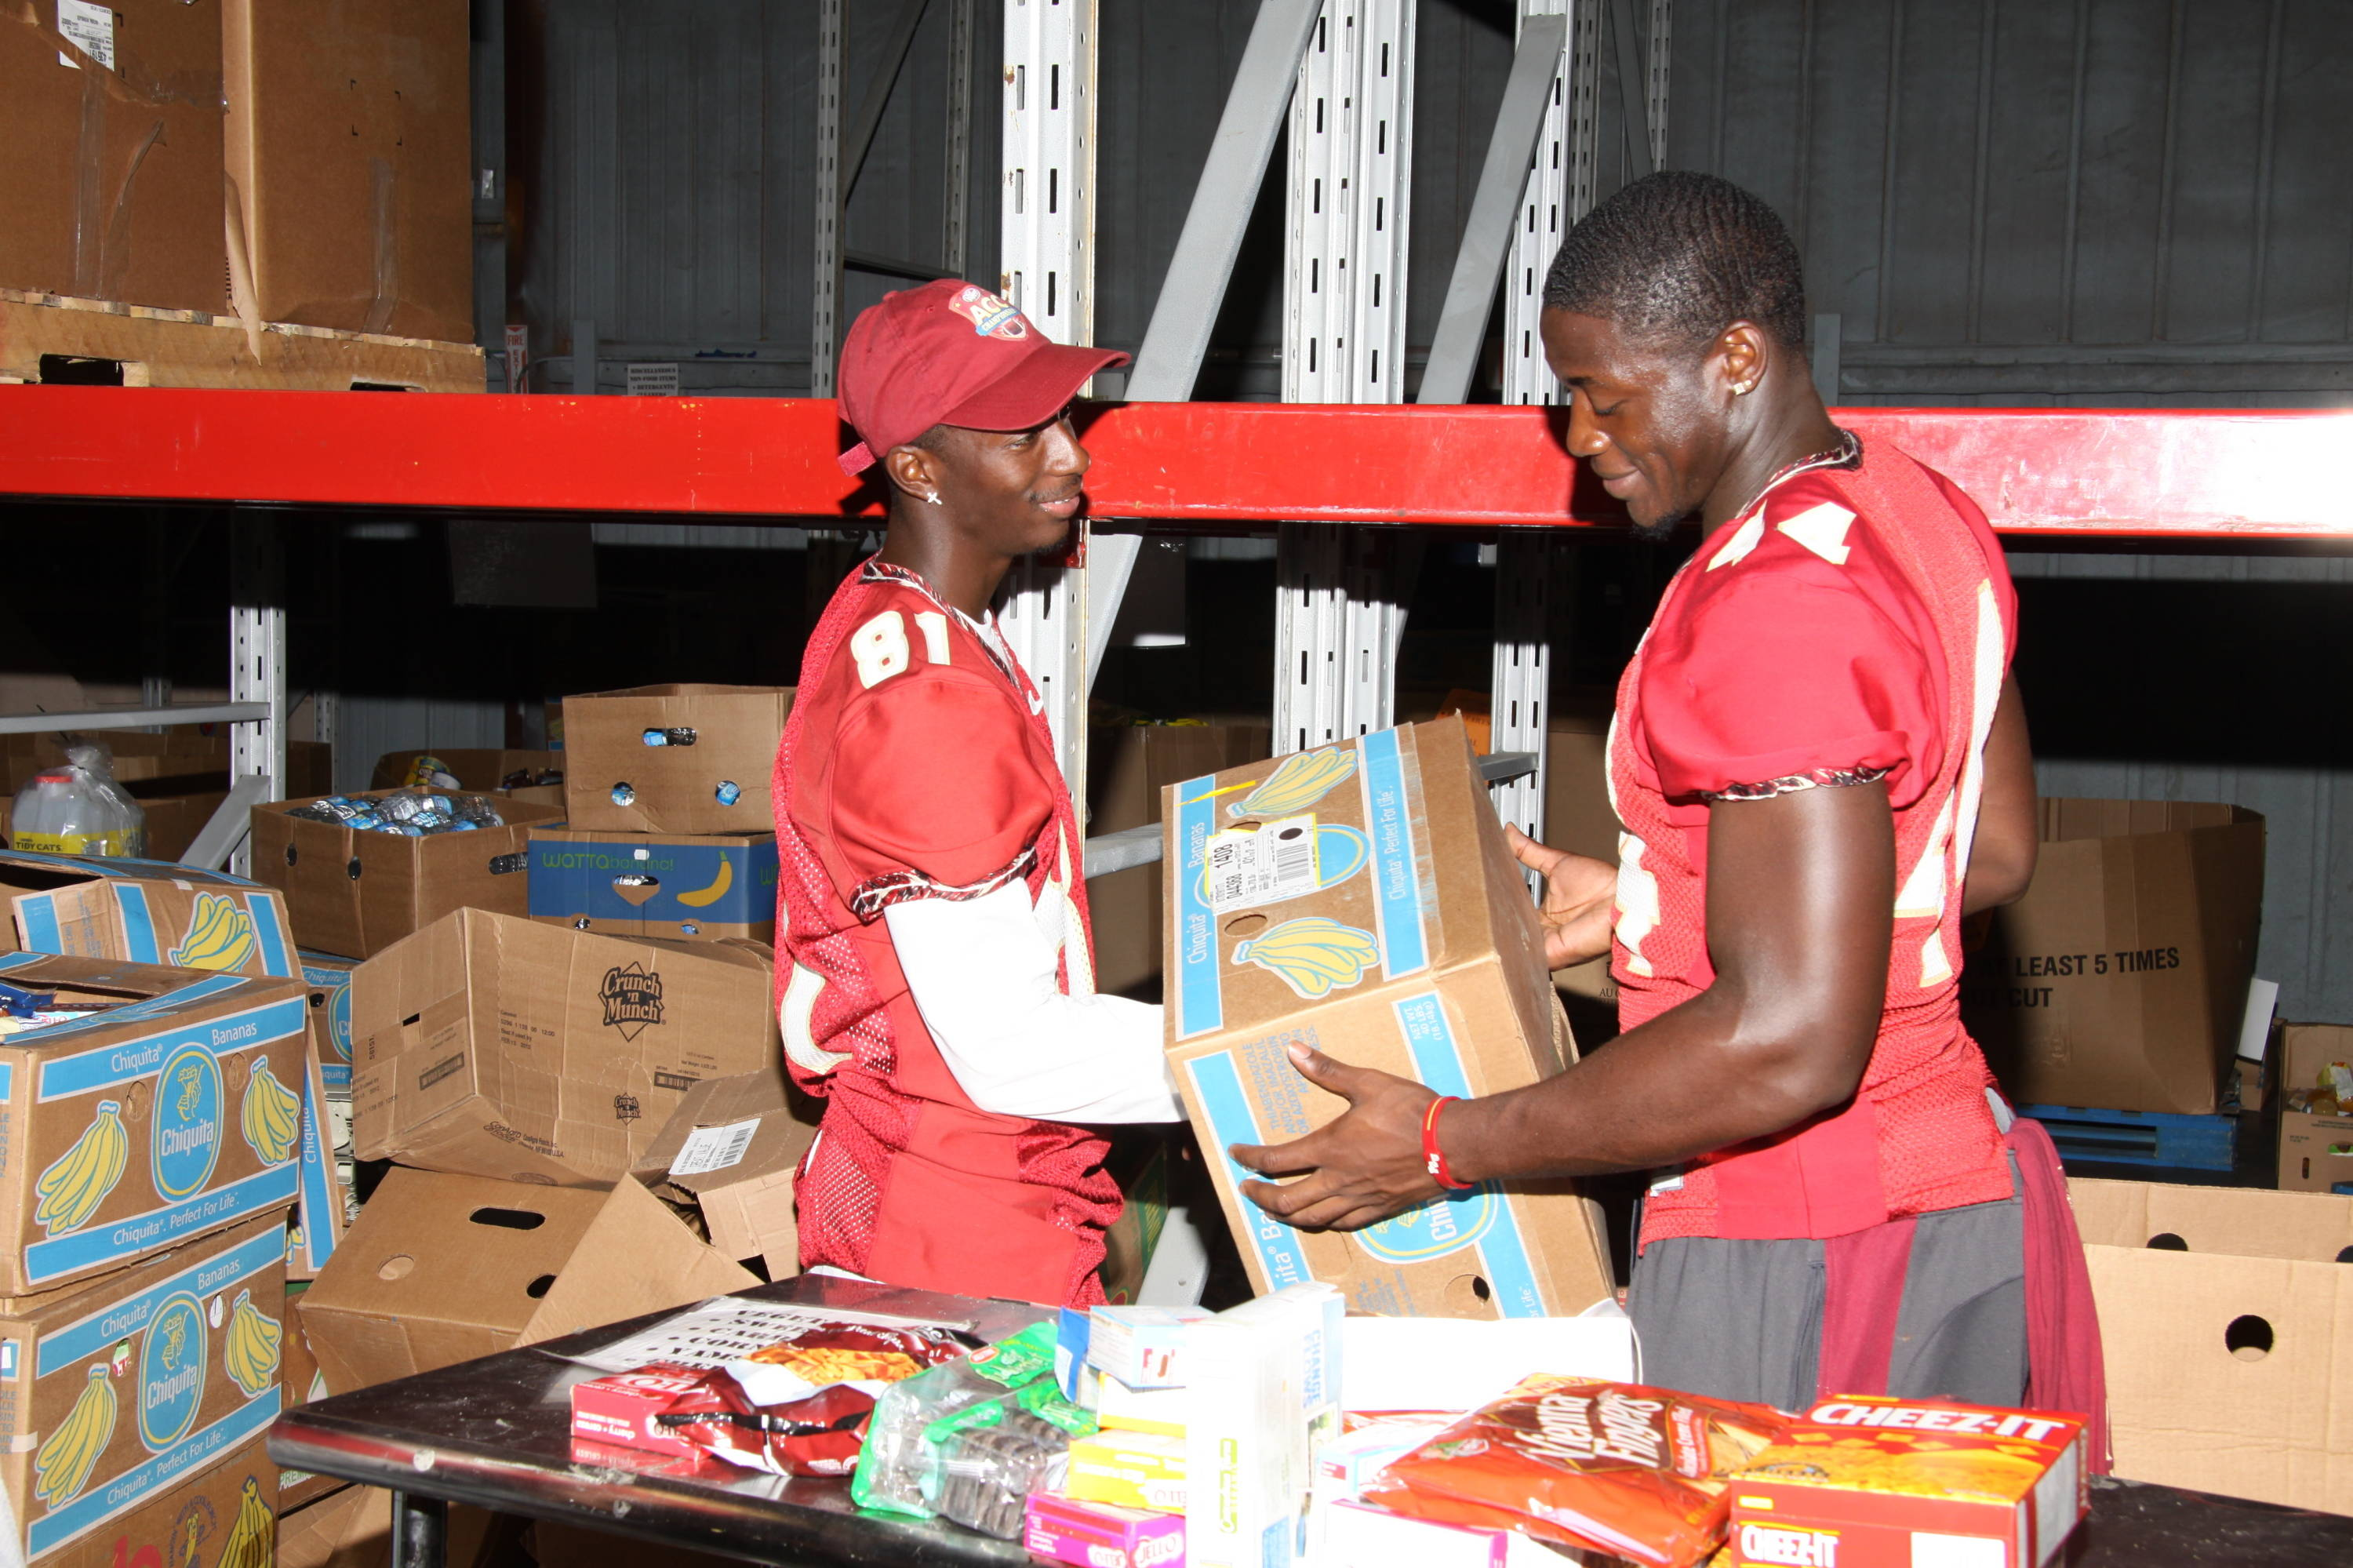 2011 FSU Football players out in the community performing community service at Second Harvest food bank.